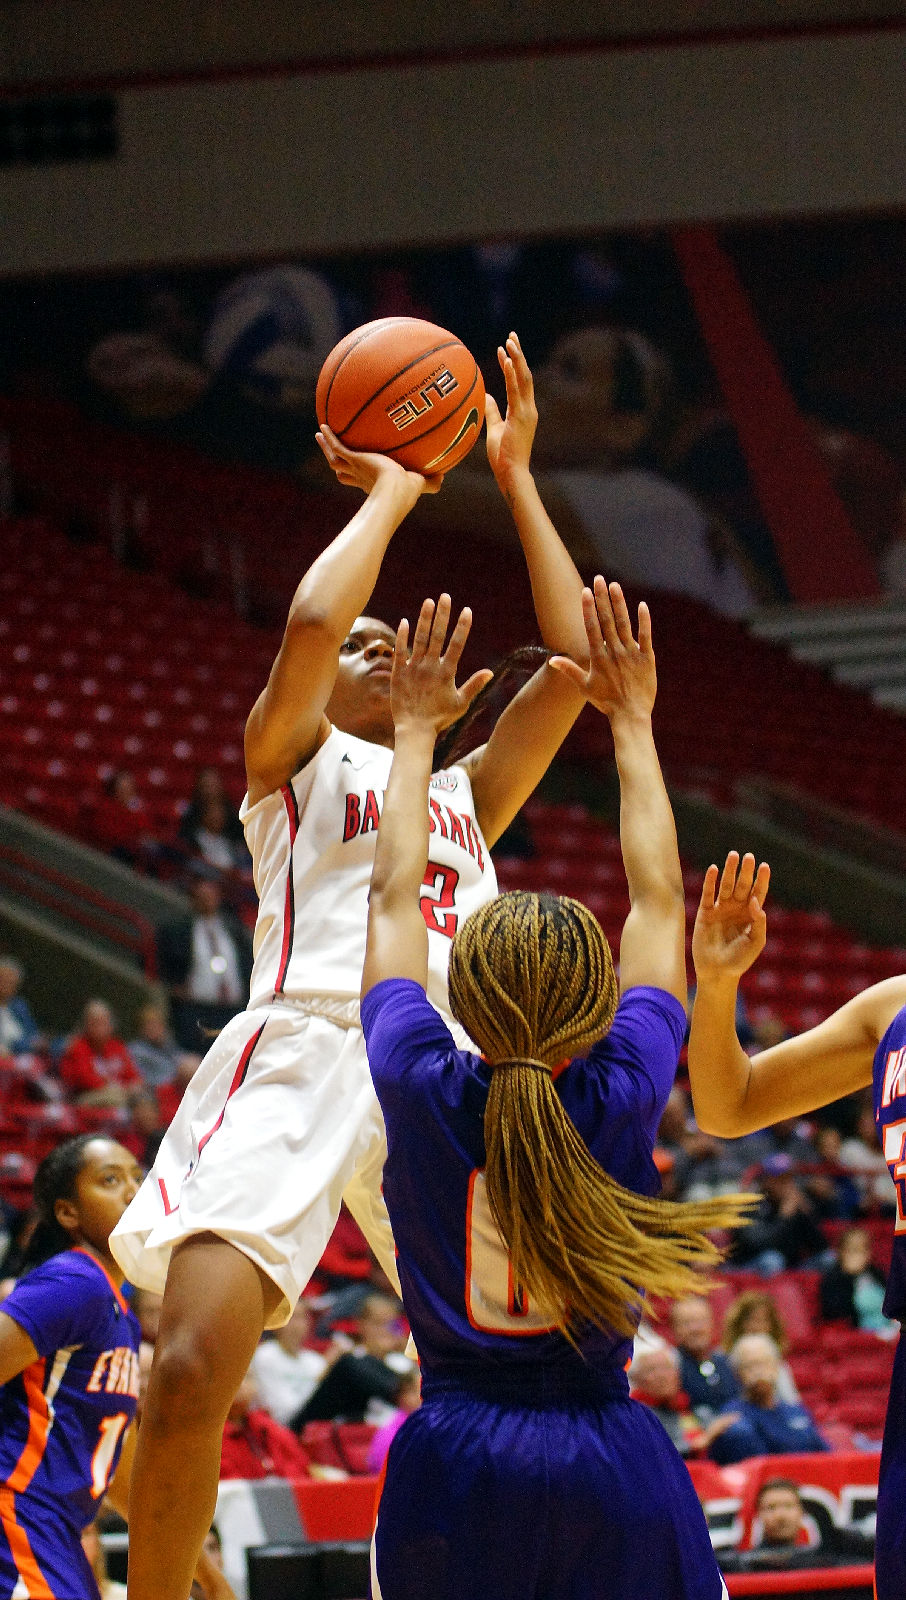 basketball ball state ncaa vs evansville womens sports related items indiana arena magazine muncie morrison williams